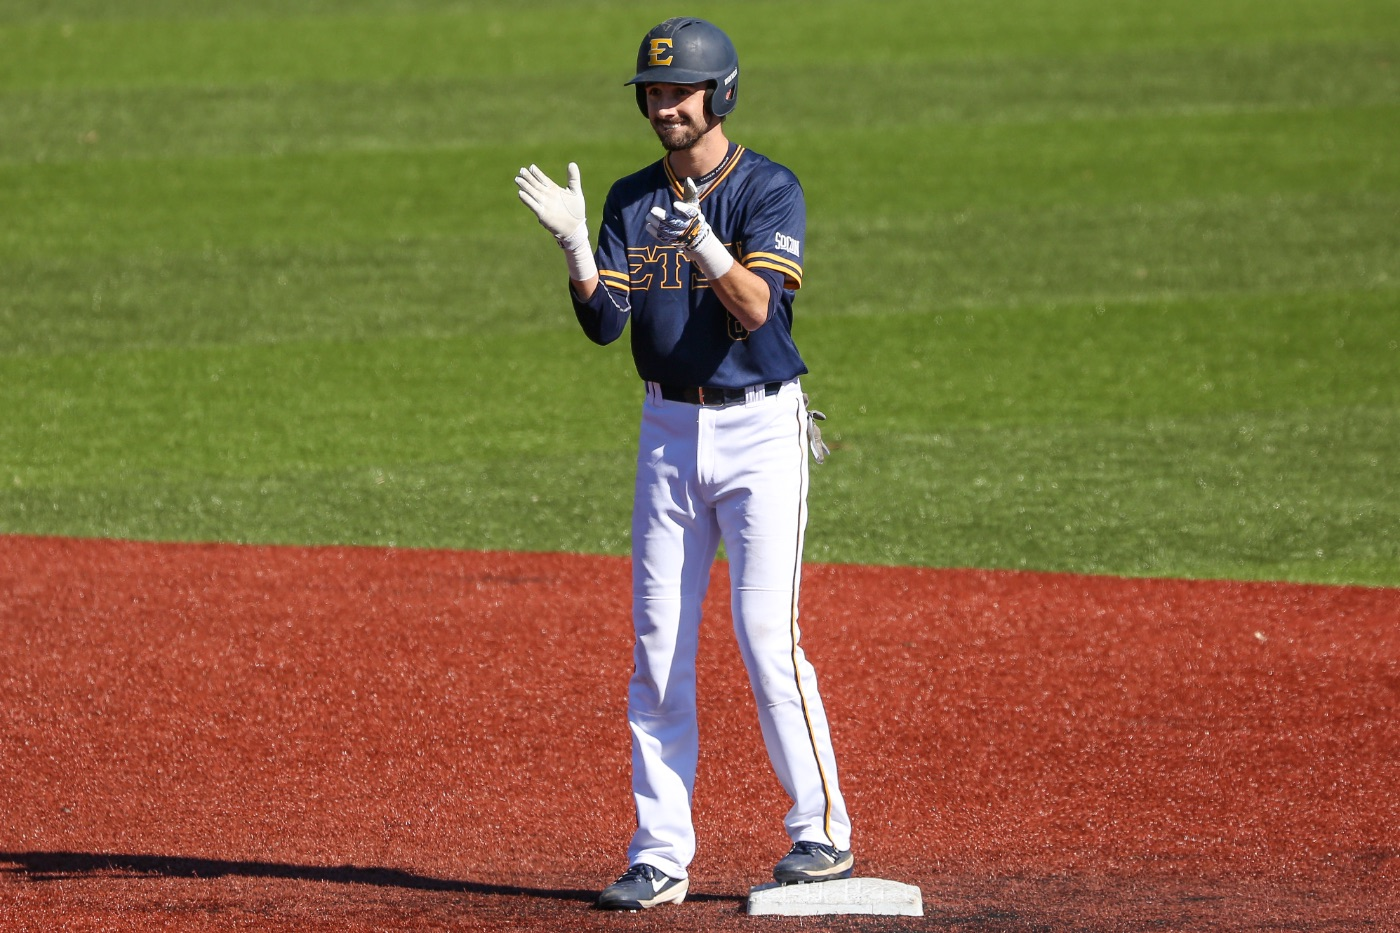 Eight run inning propels ETSU past Tulane, 9-1